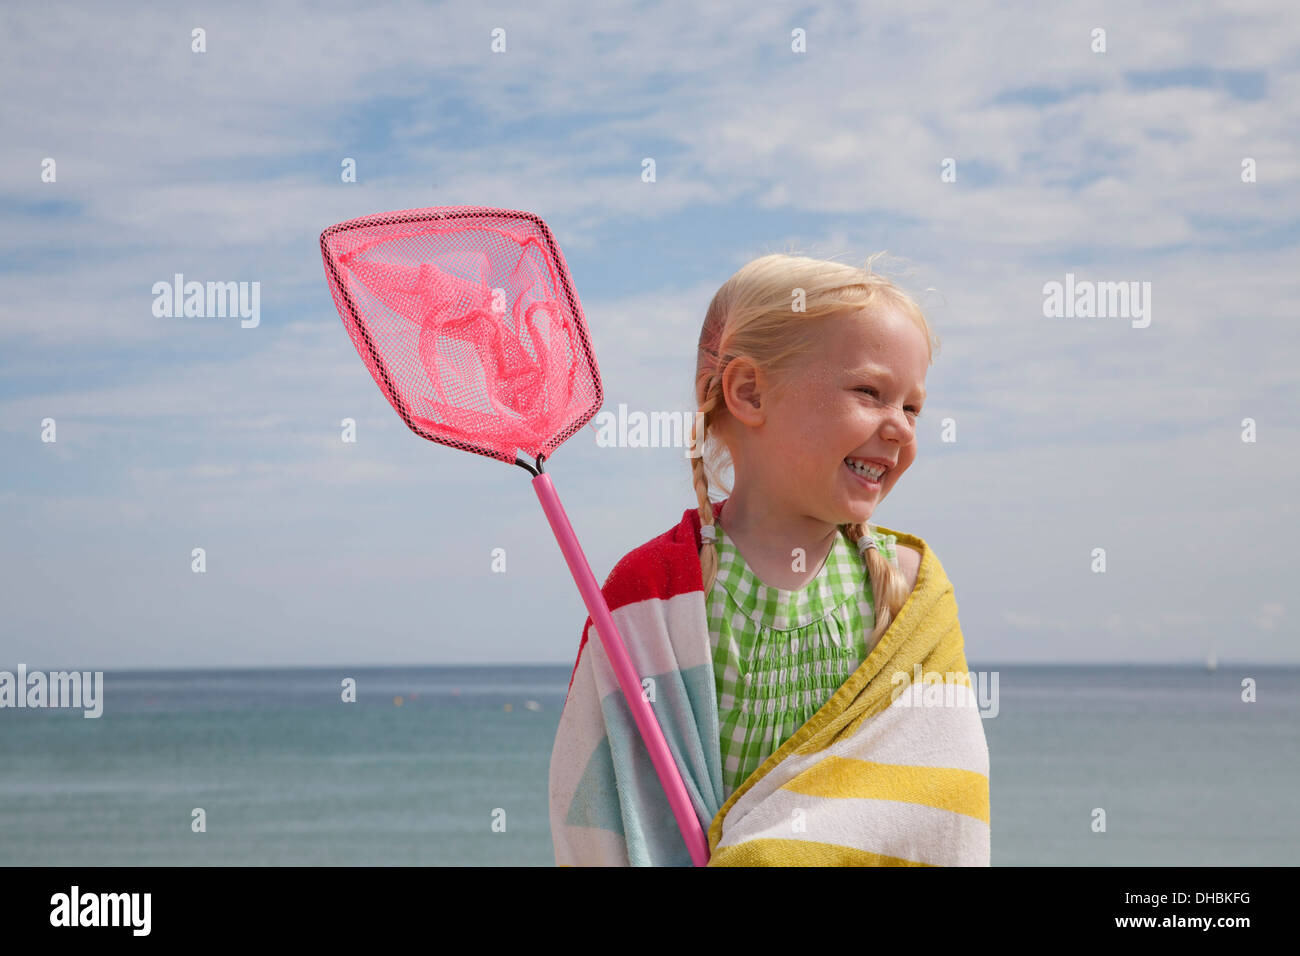 A young girl with a beach towel around her shoulders, carrying a small fishing net. - Stock Image